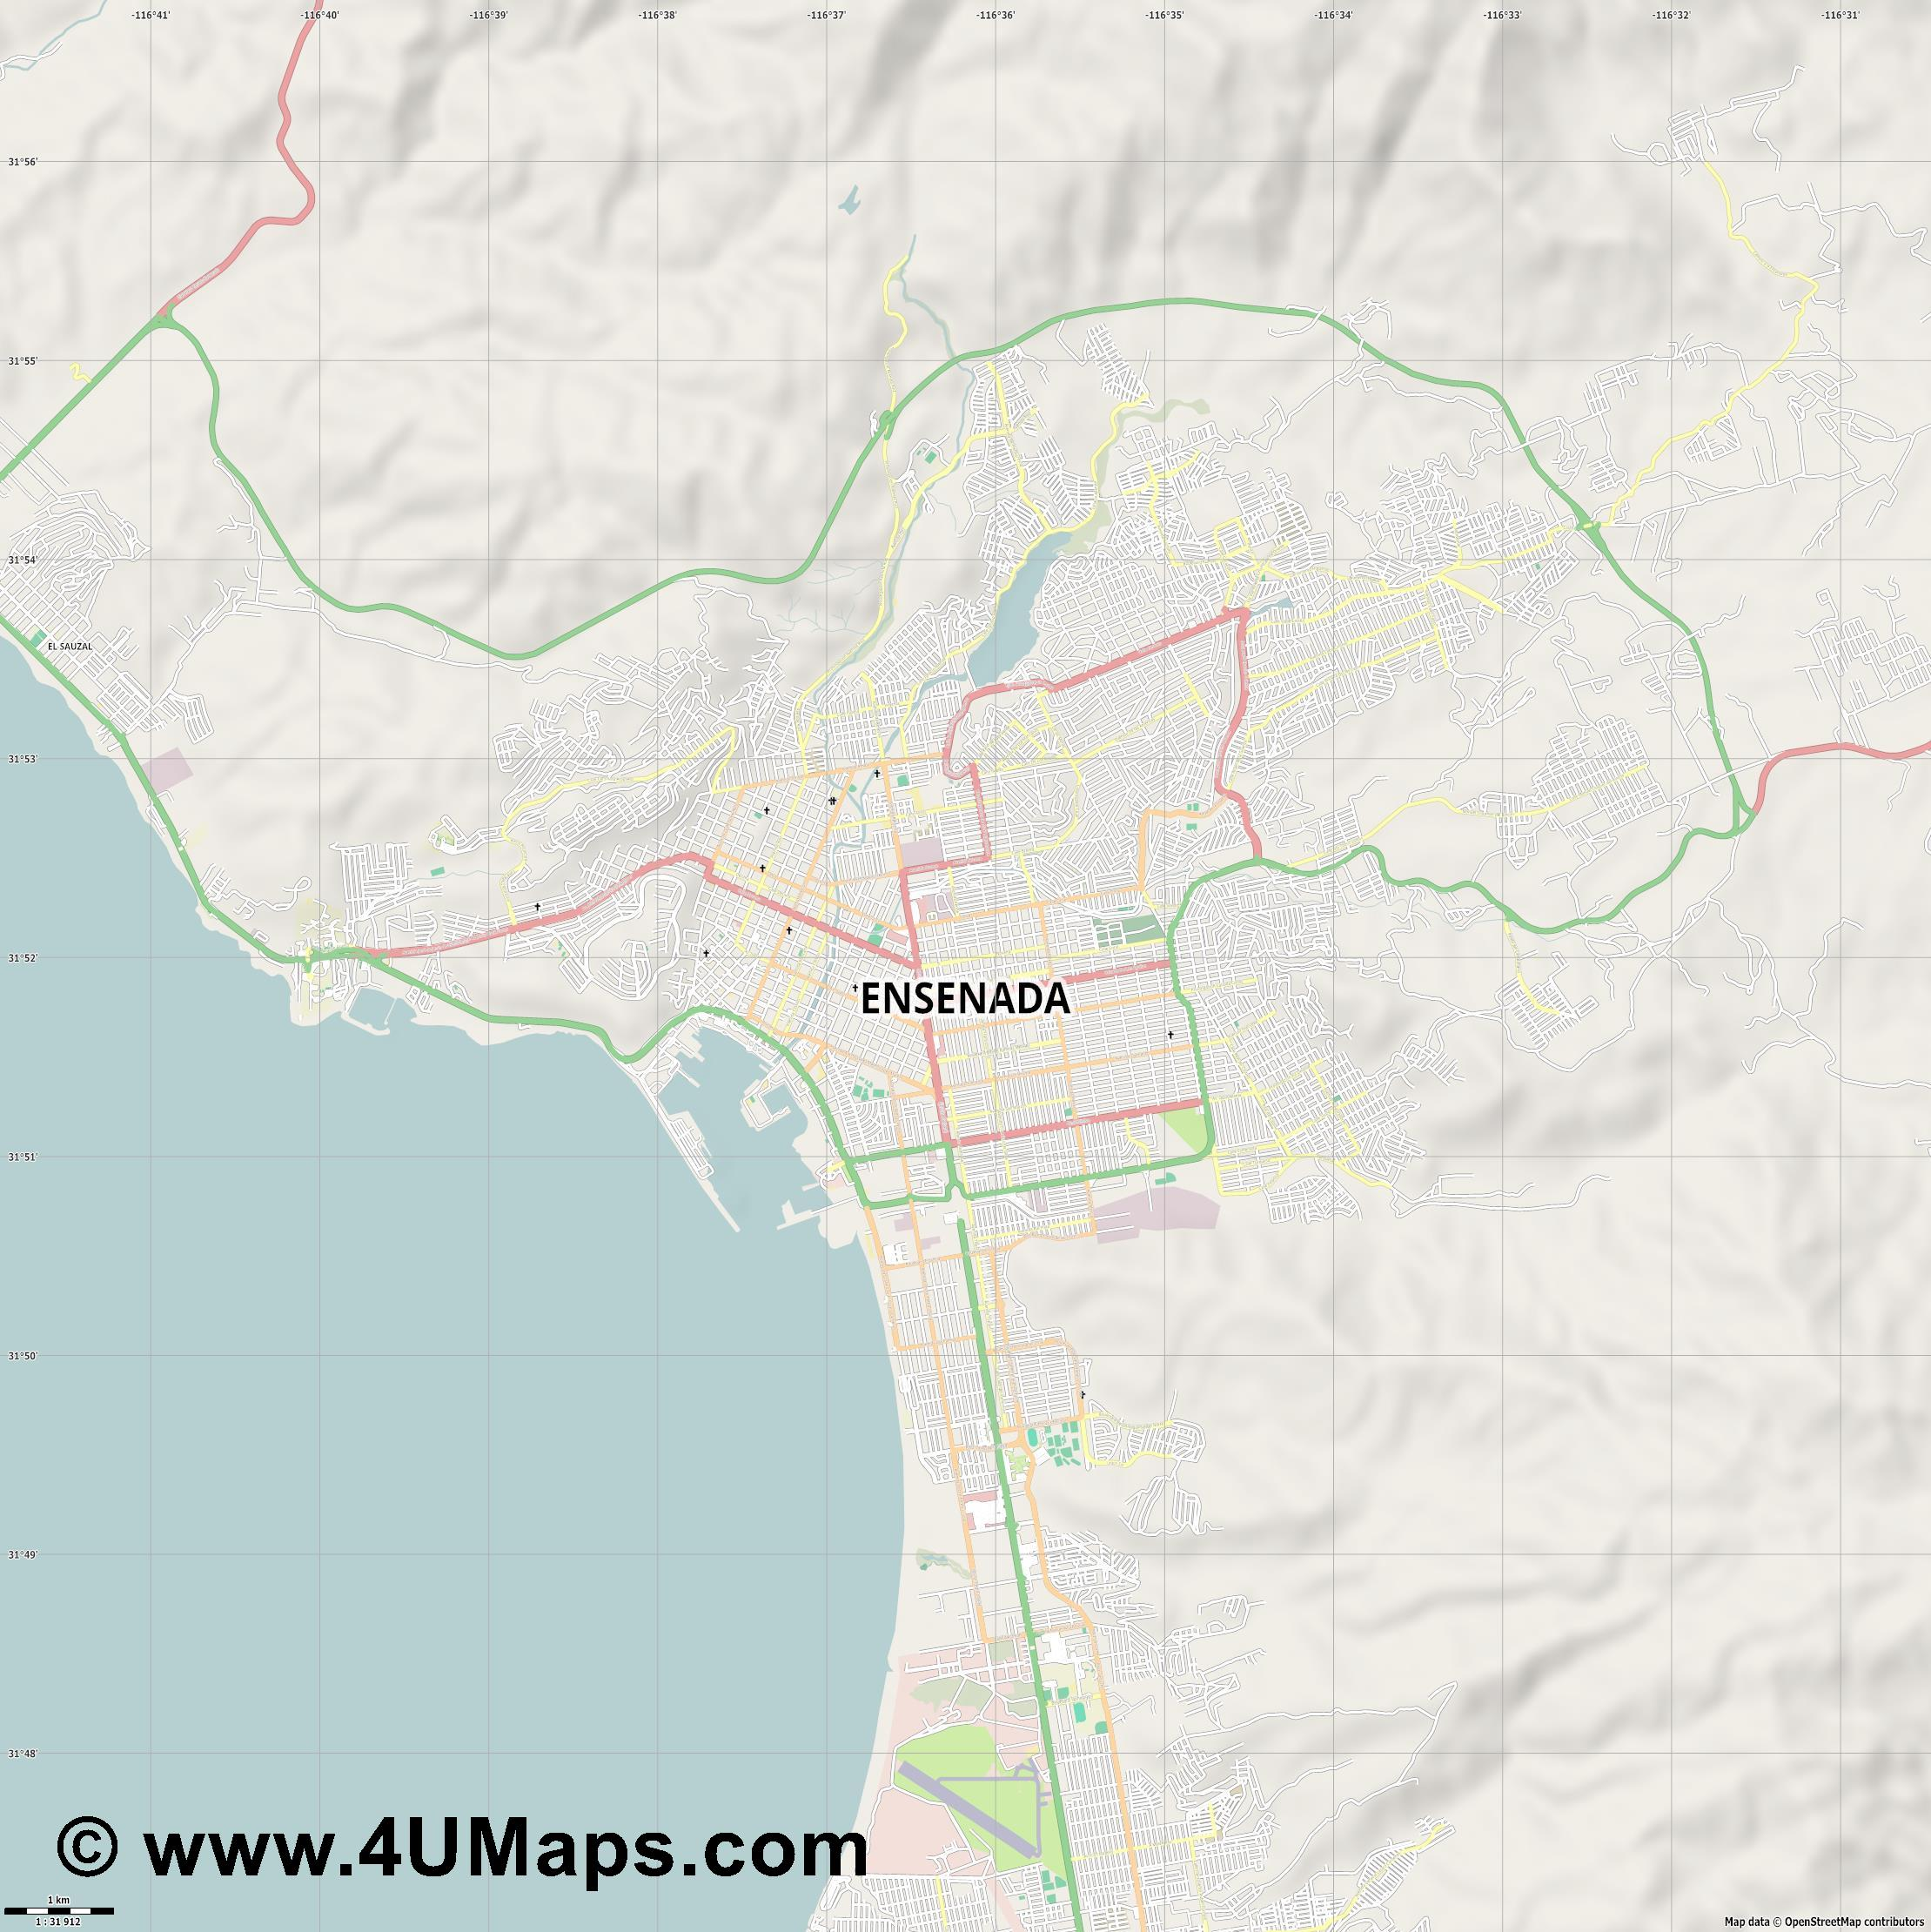 Ensenada  jpg high detail, large area preview vector city map